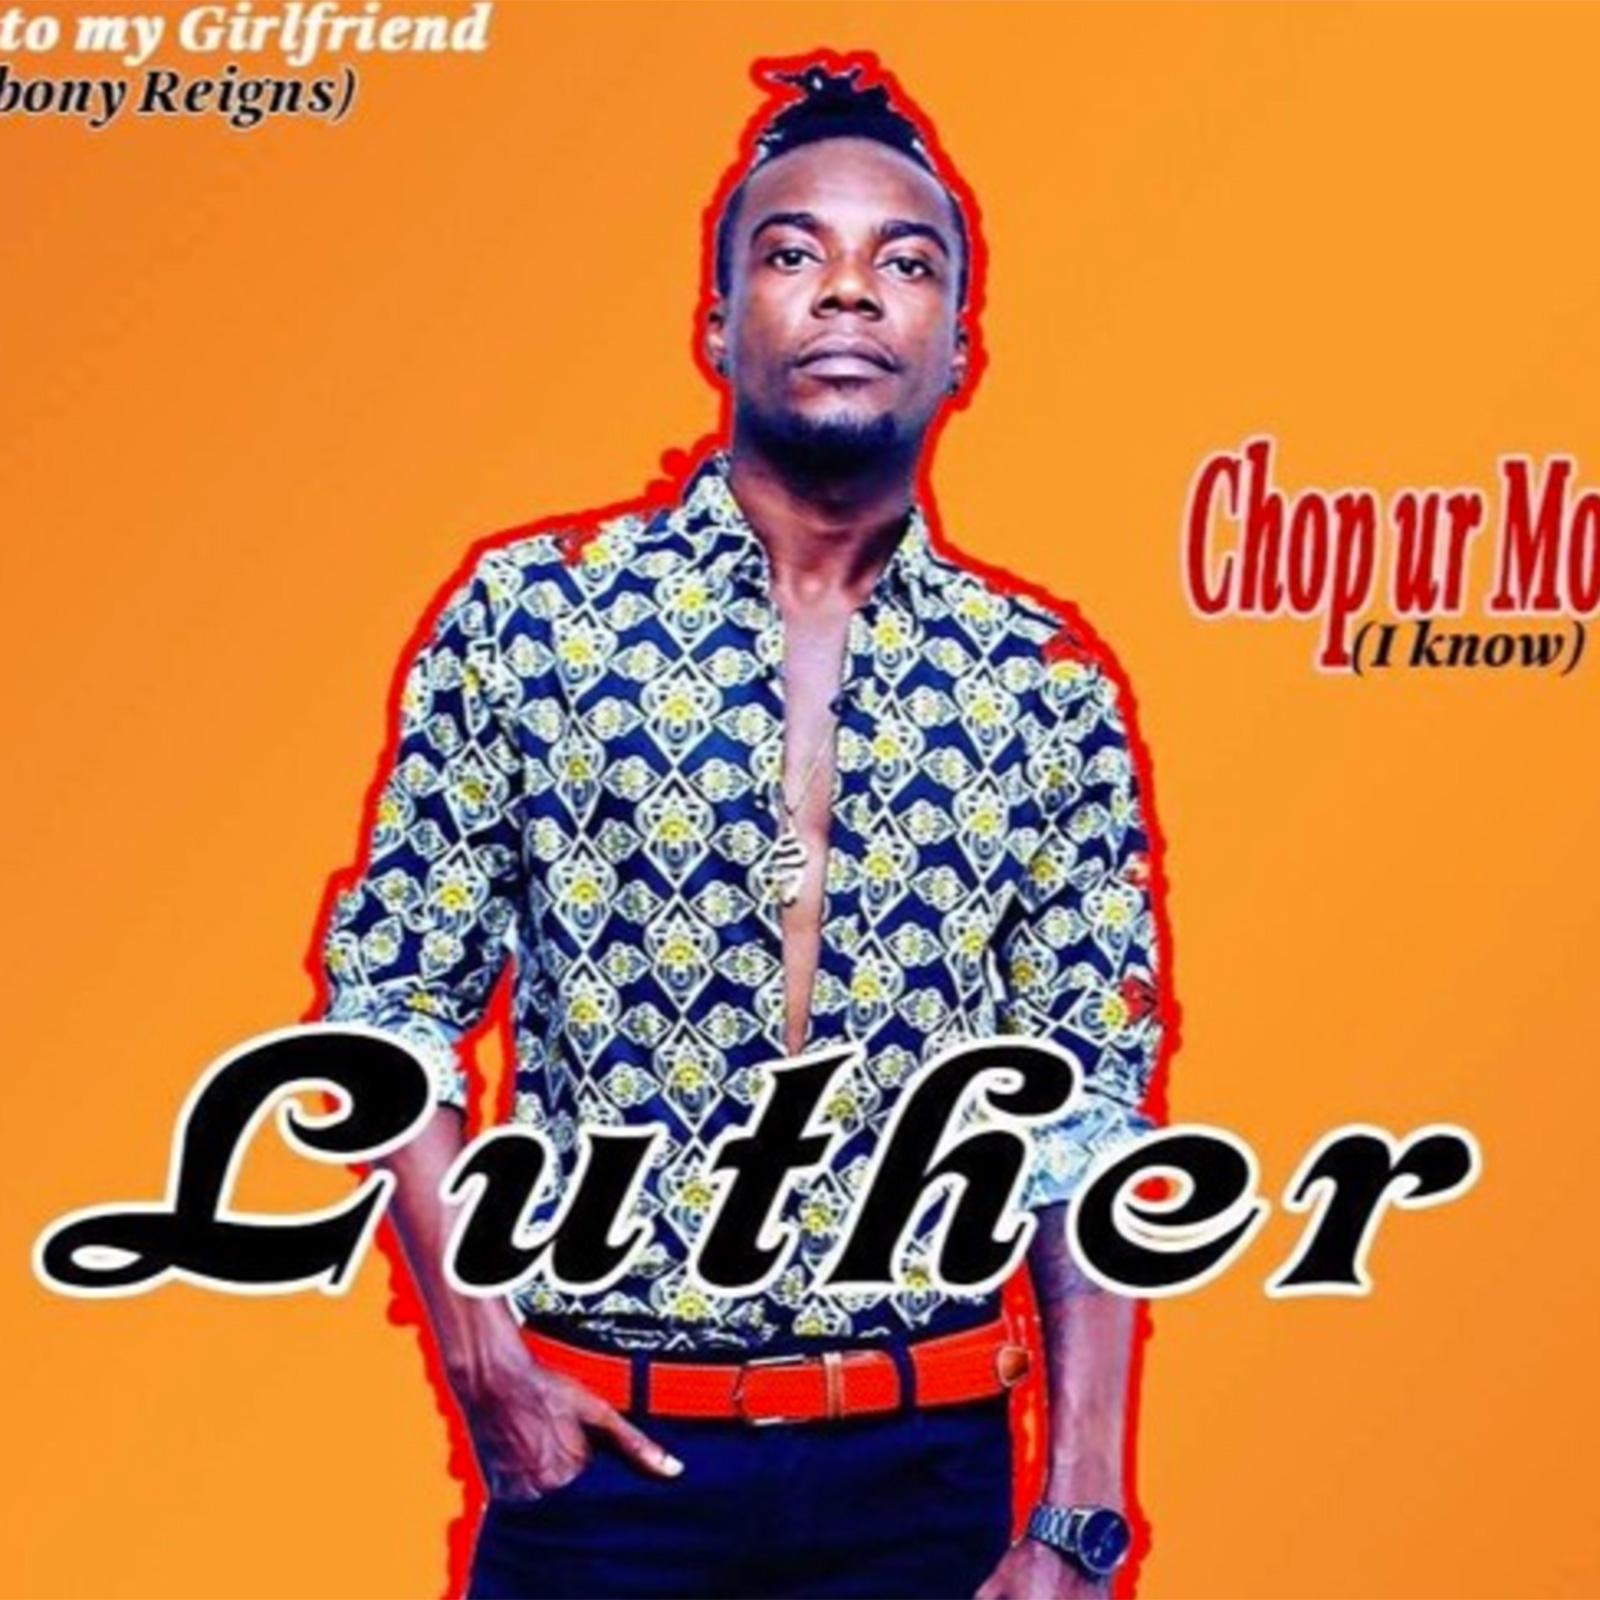 Chop Ur Mother by Luther